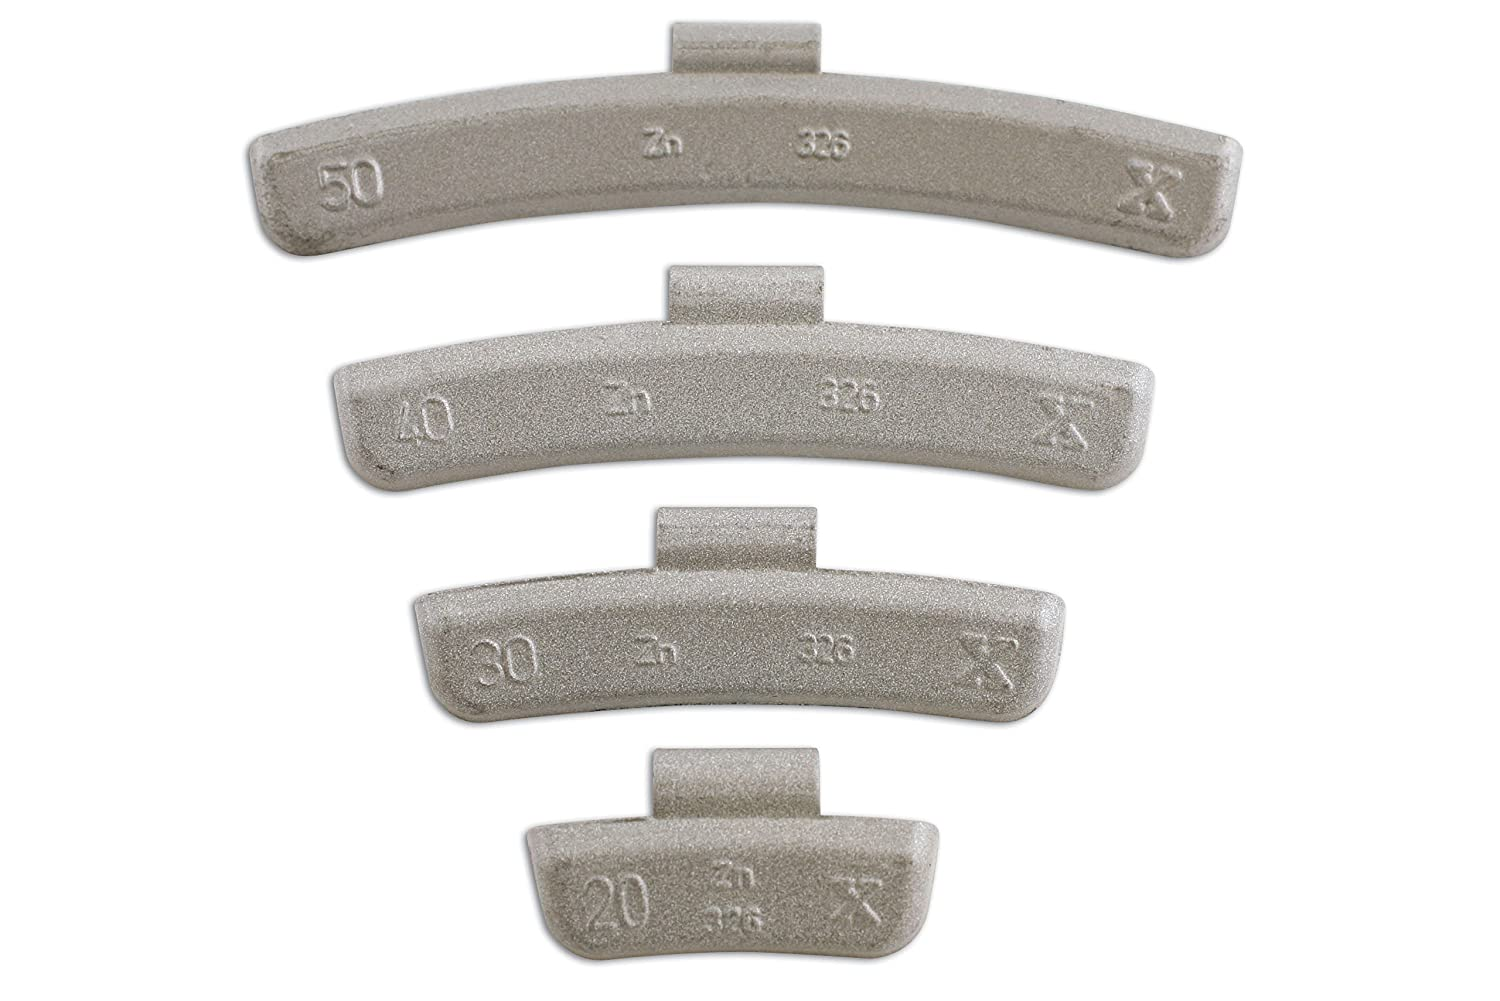 Connect 32861 45g Wheel Weights for Alloy Wheels (Box of 50) The Tool Connection Ltd.